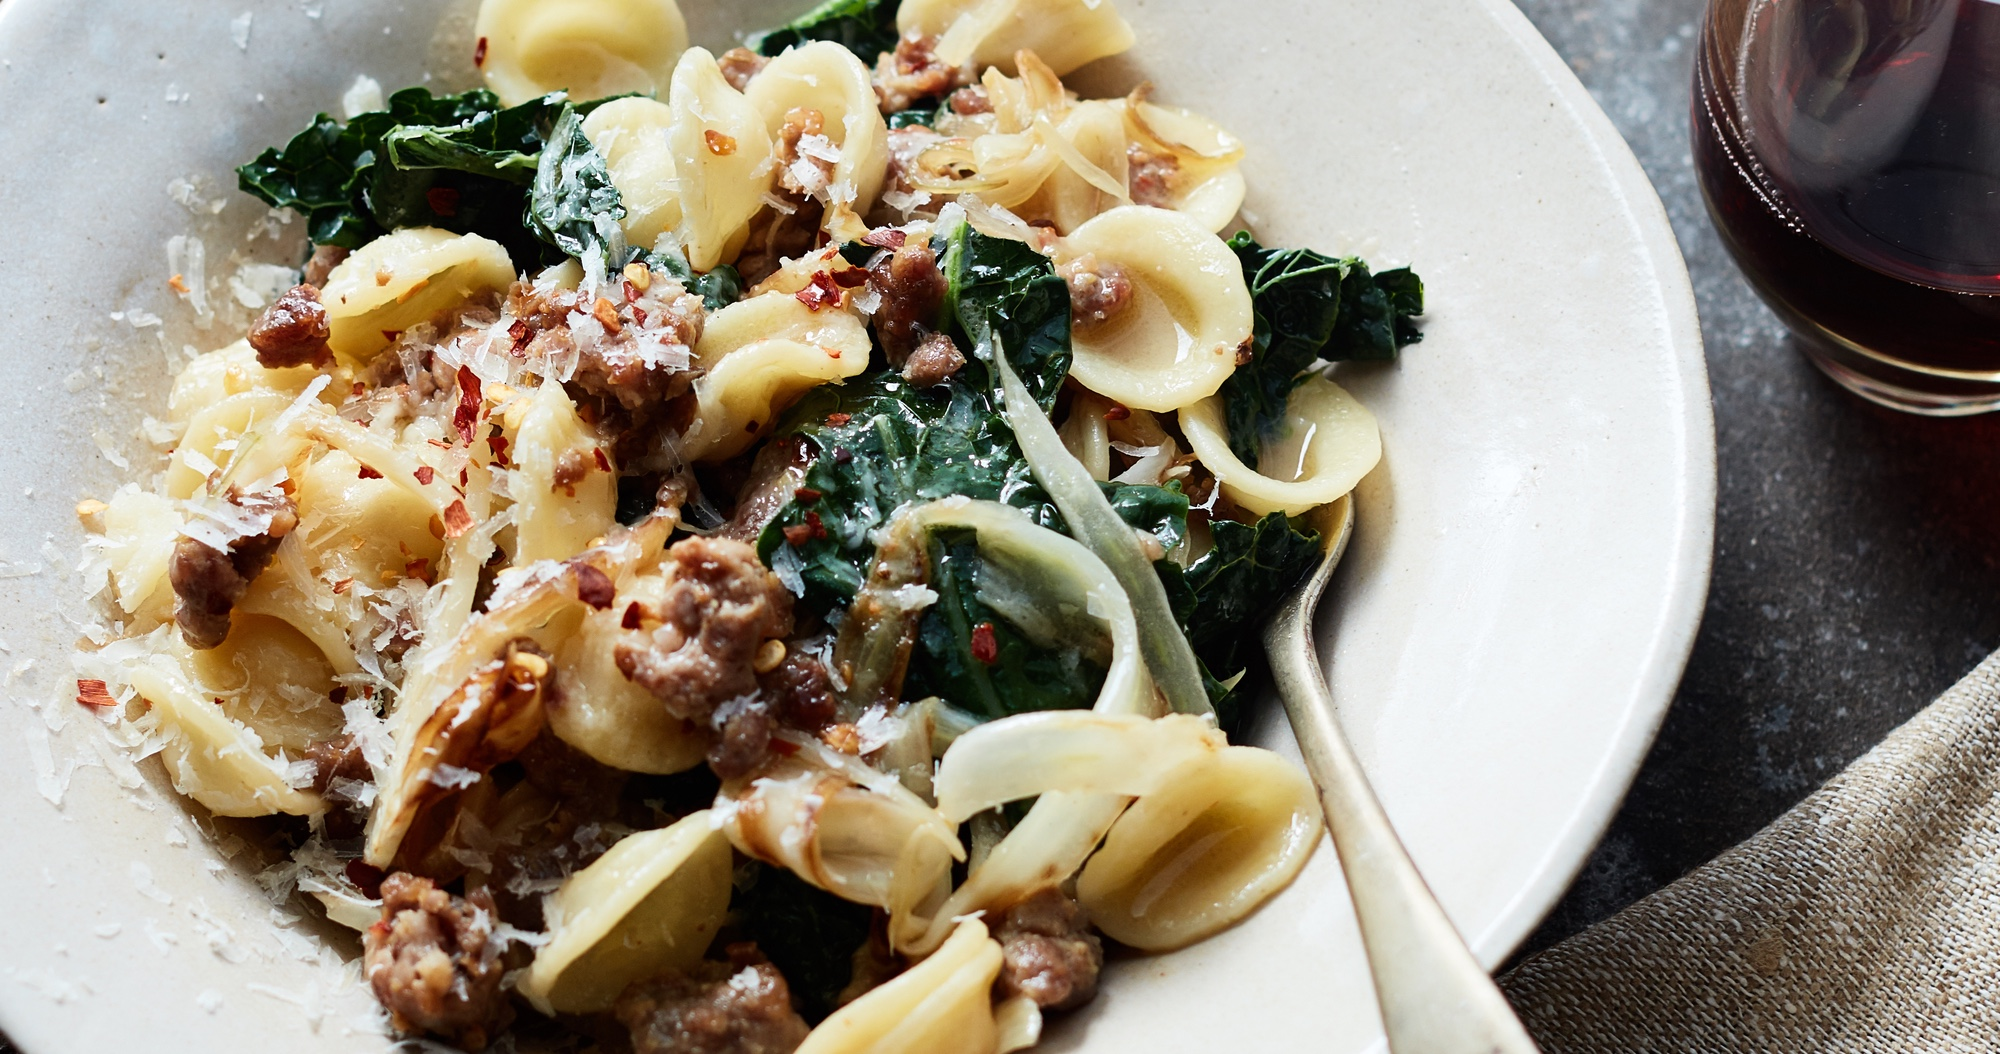 Orecchiette with Kale, Fennel, and Sausage